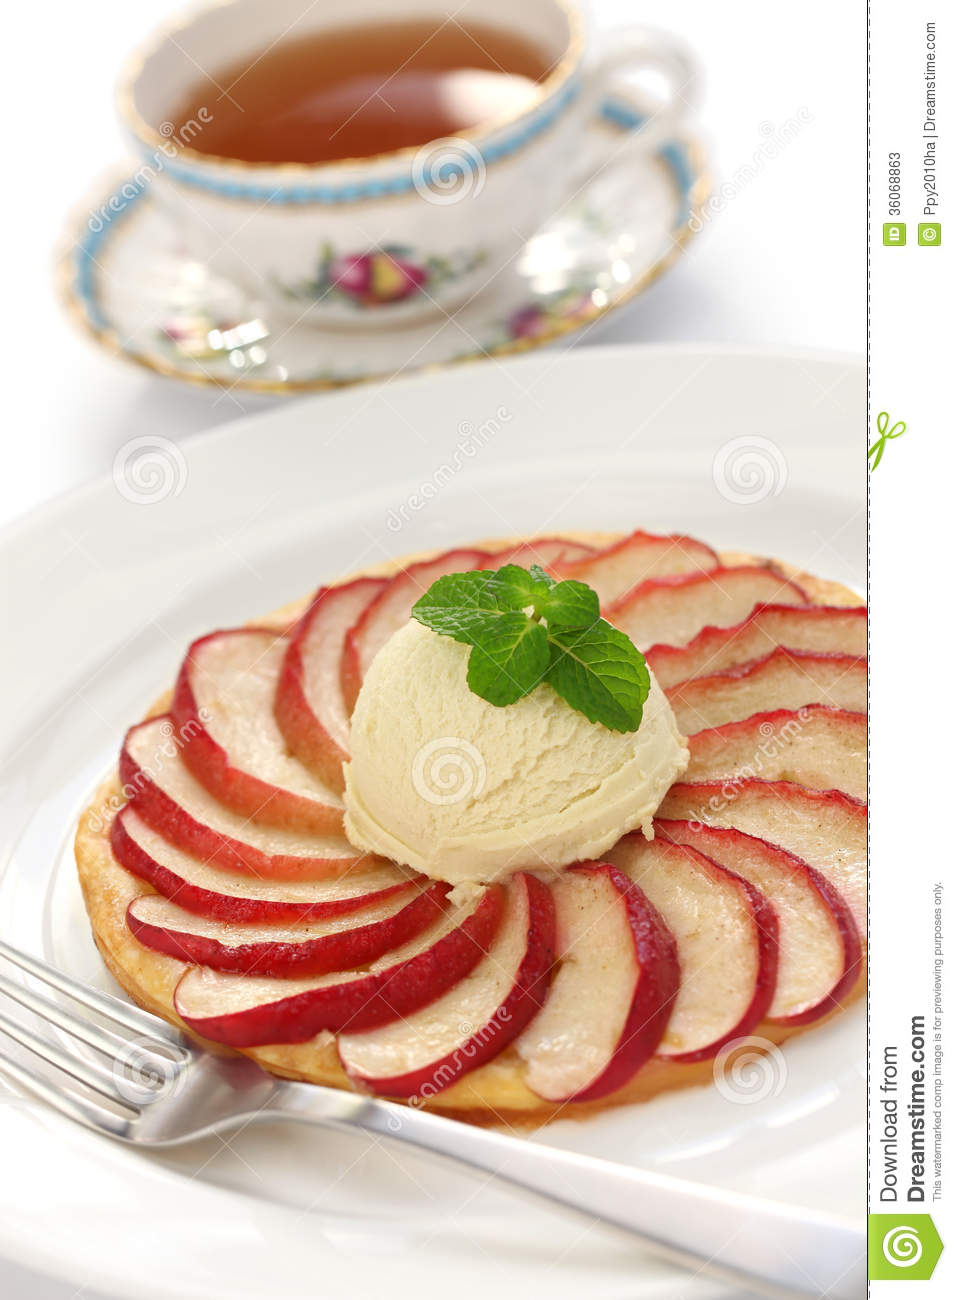 Apple tart, flat apple pie with ice cream and a cup of tea.